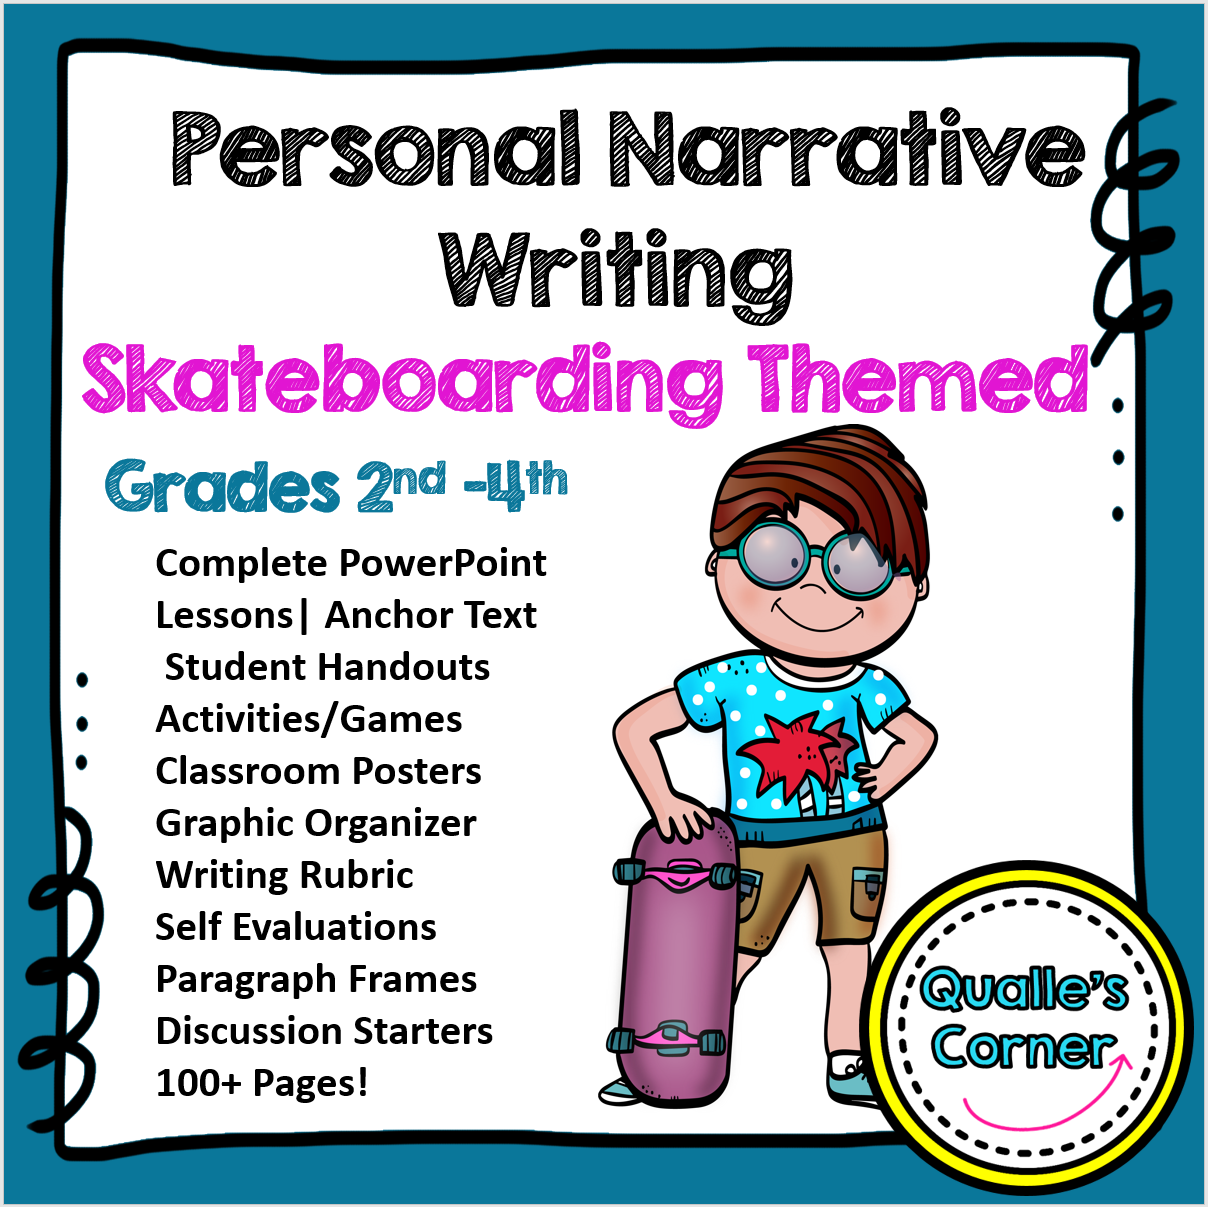 Personal Narrative Writing Unit Activities For 2nd And